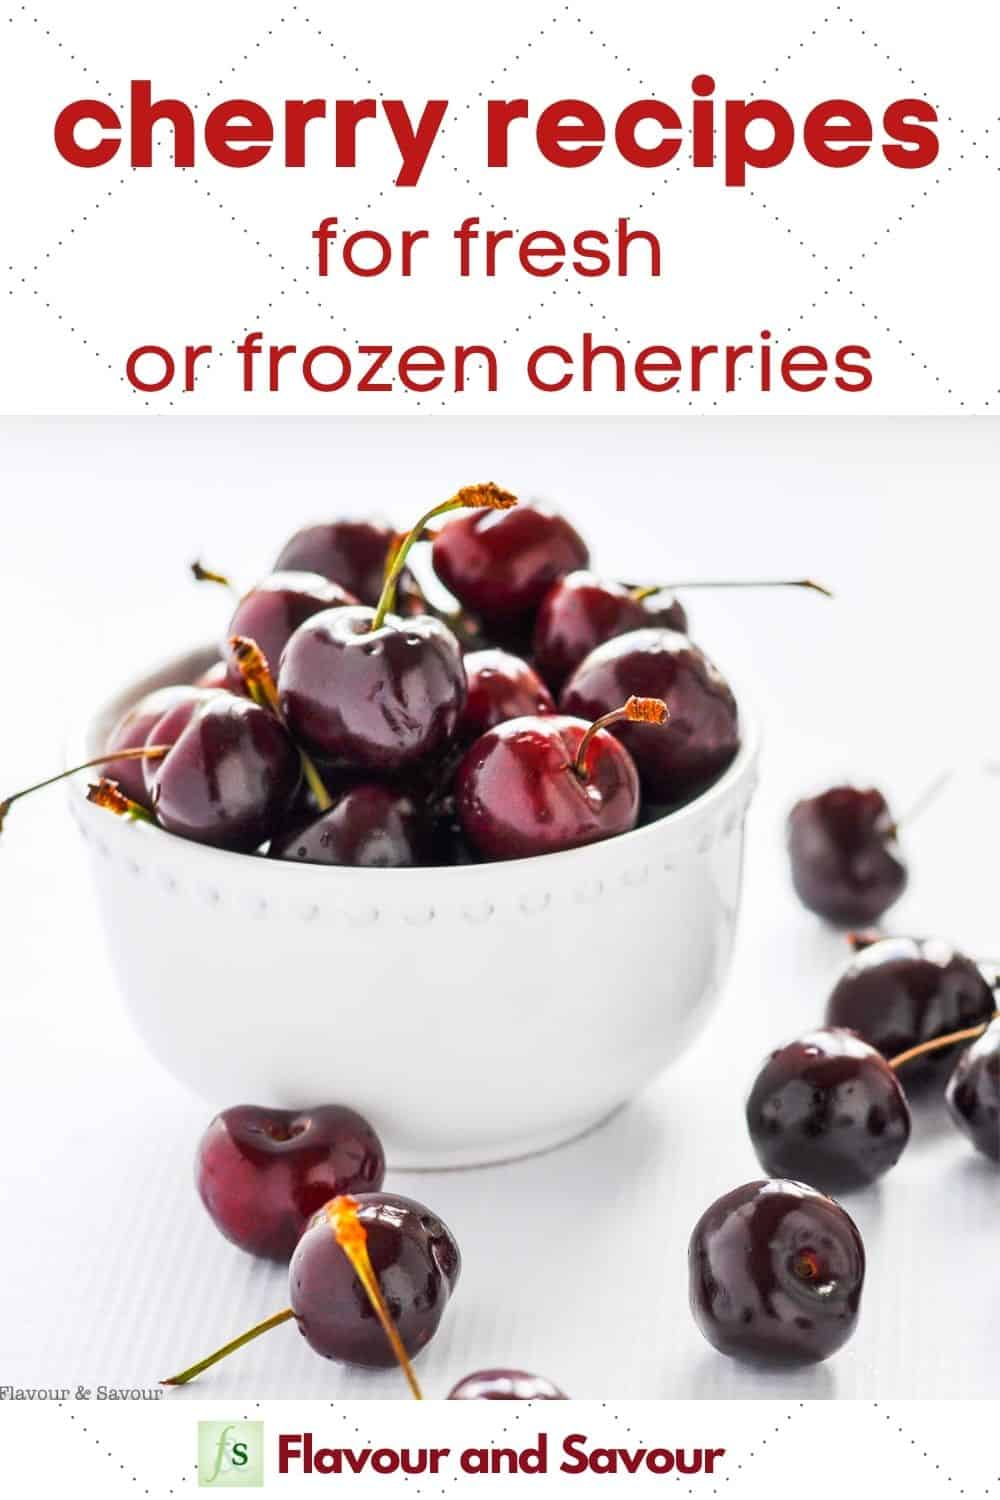 image and title for 8 Fabulous Cherry Recipes for fresh or frozen cherries